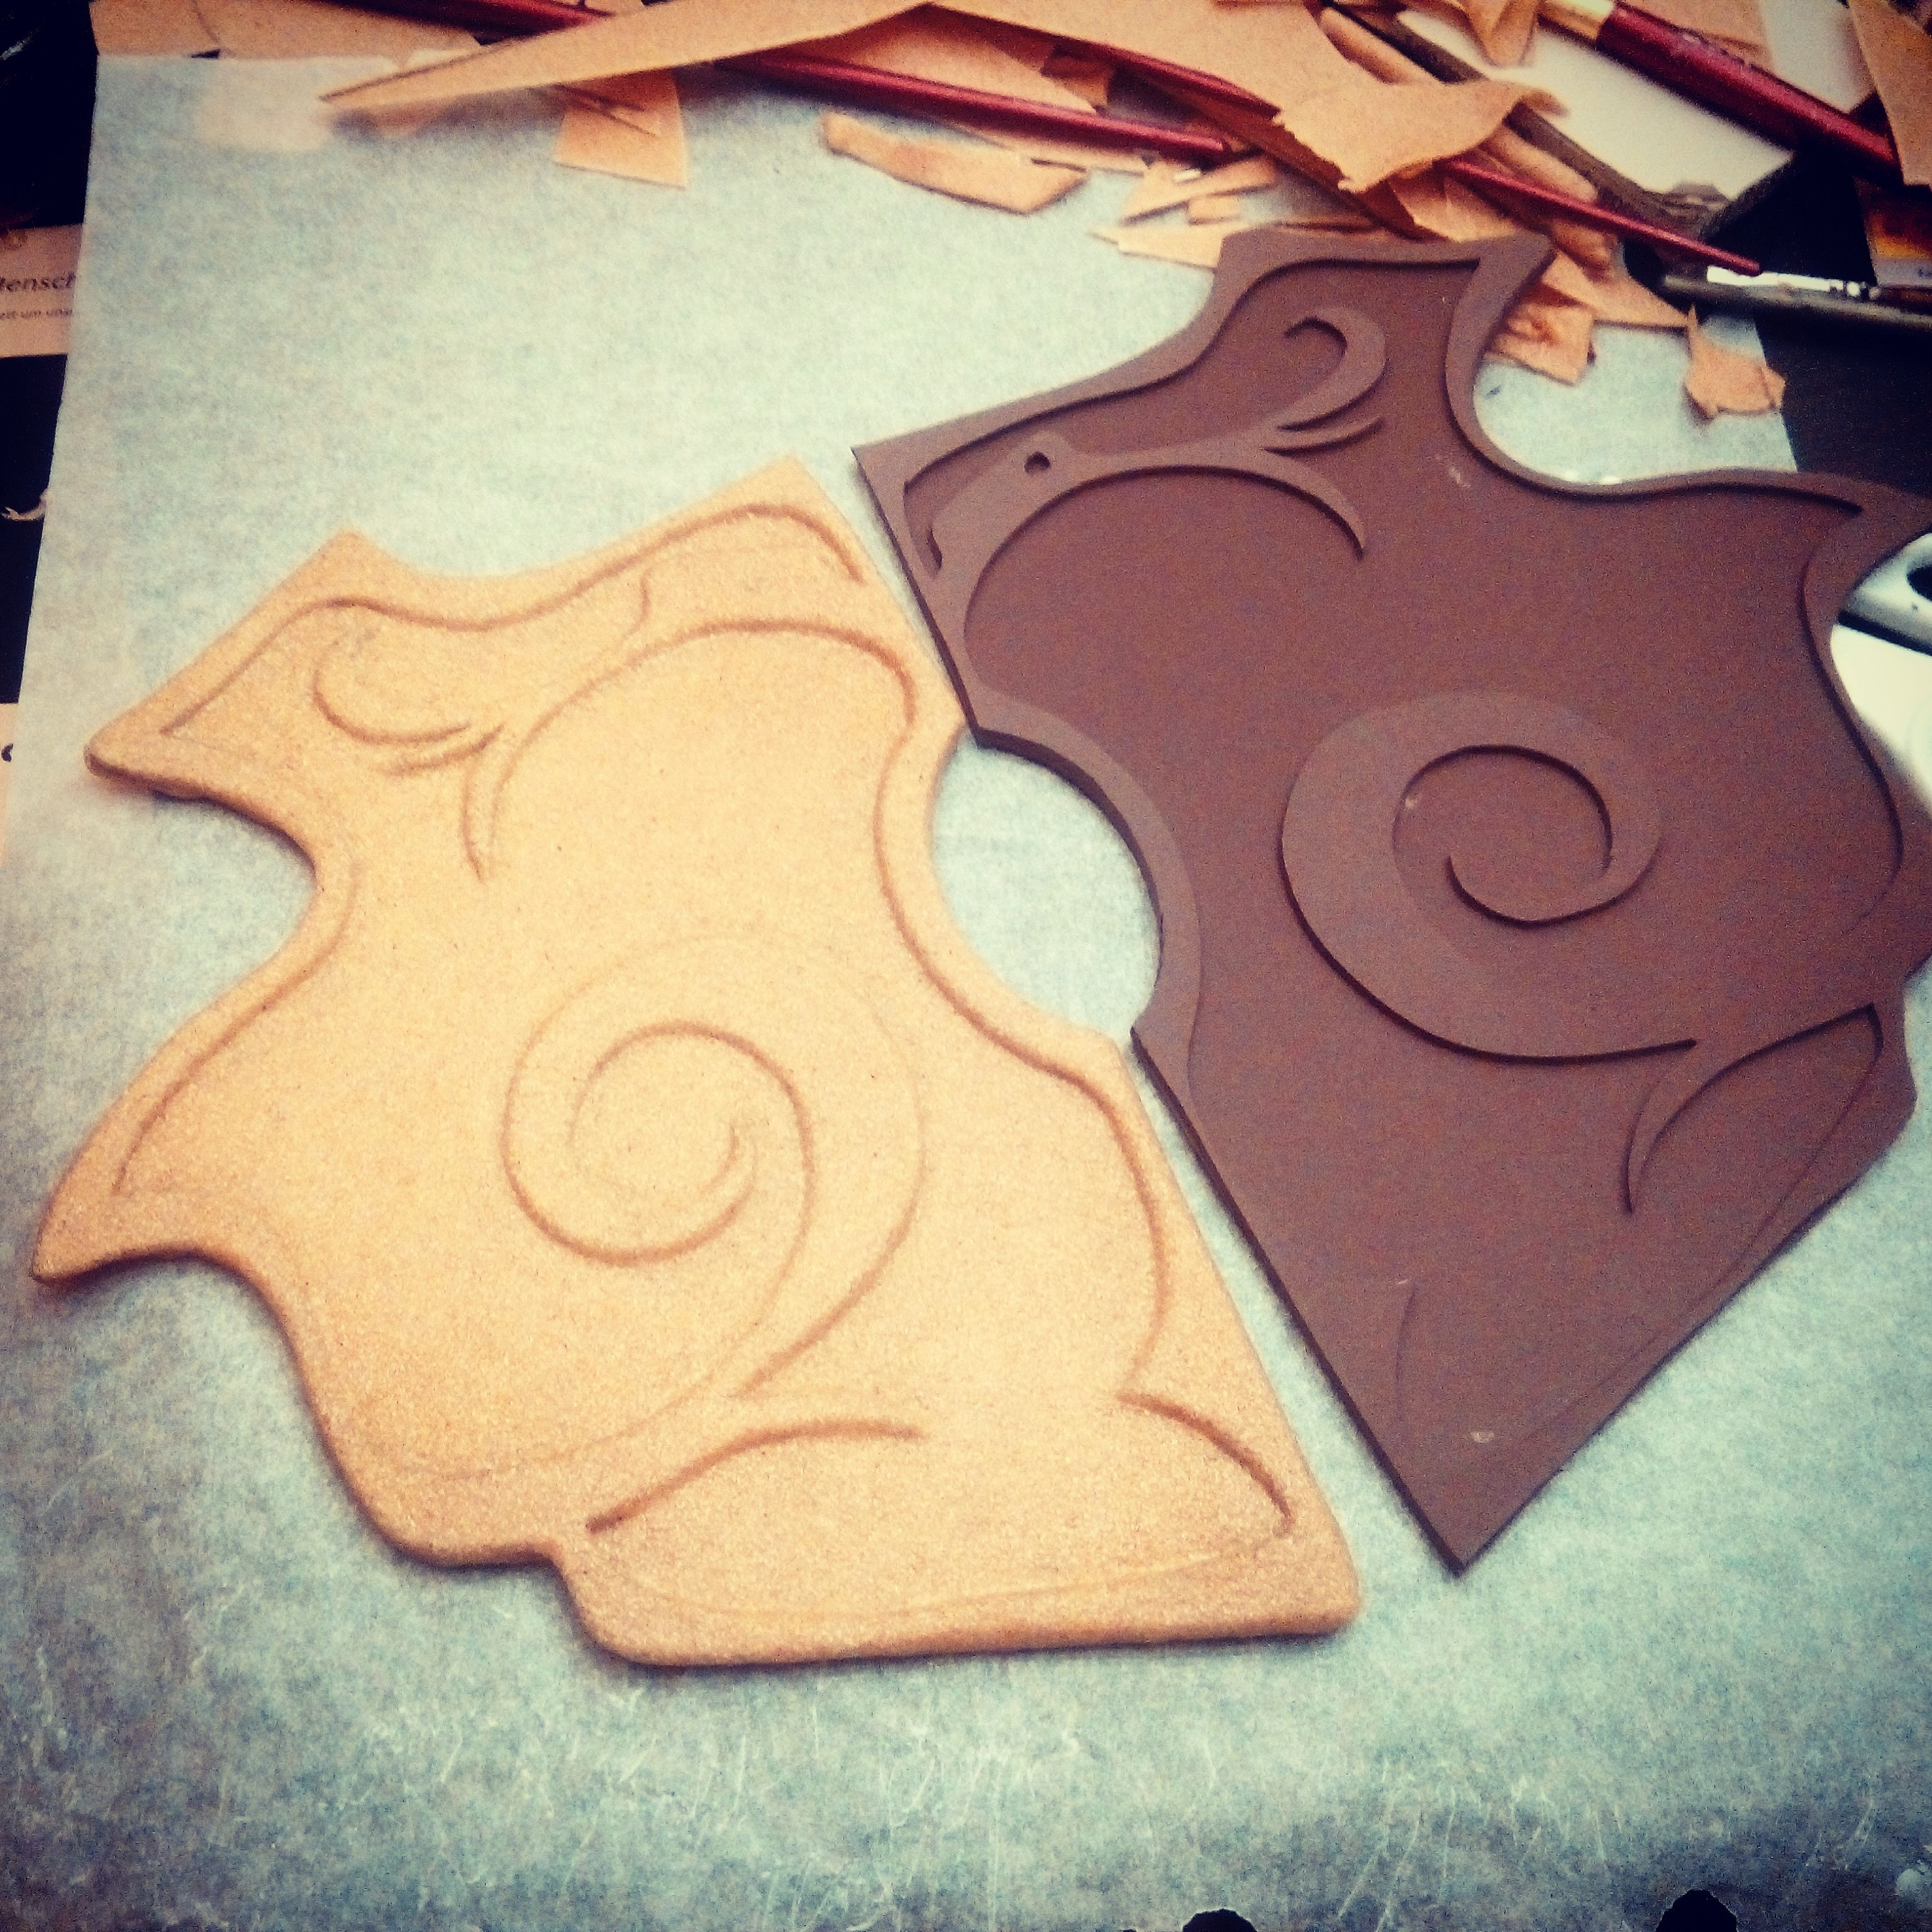 Covering Armor Parts with Worbla Cosplay Ideen